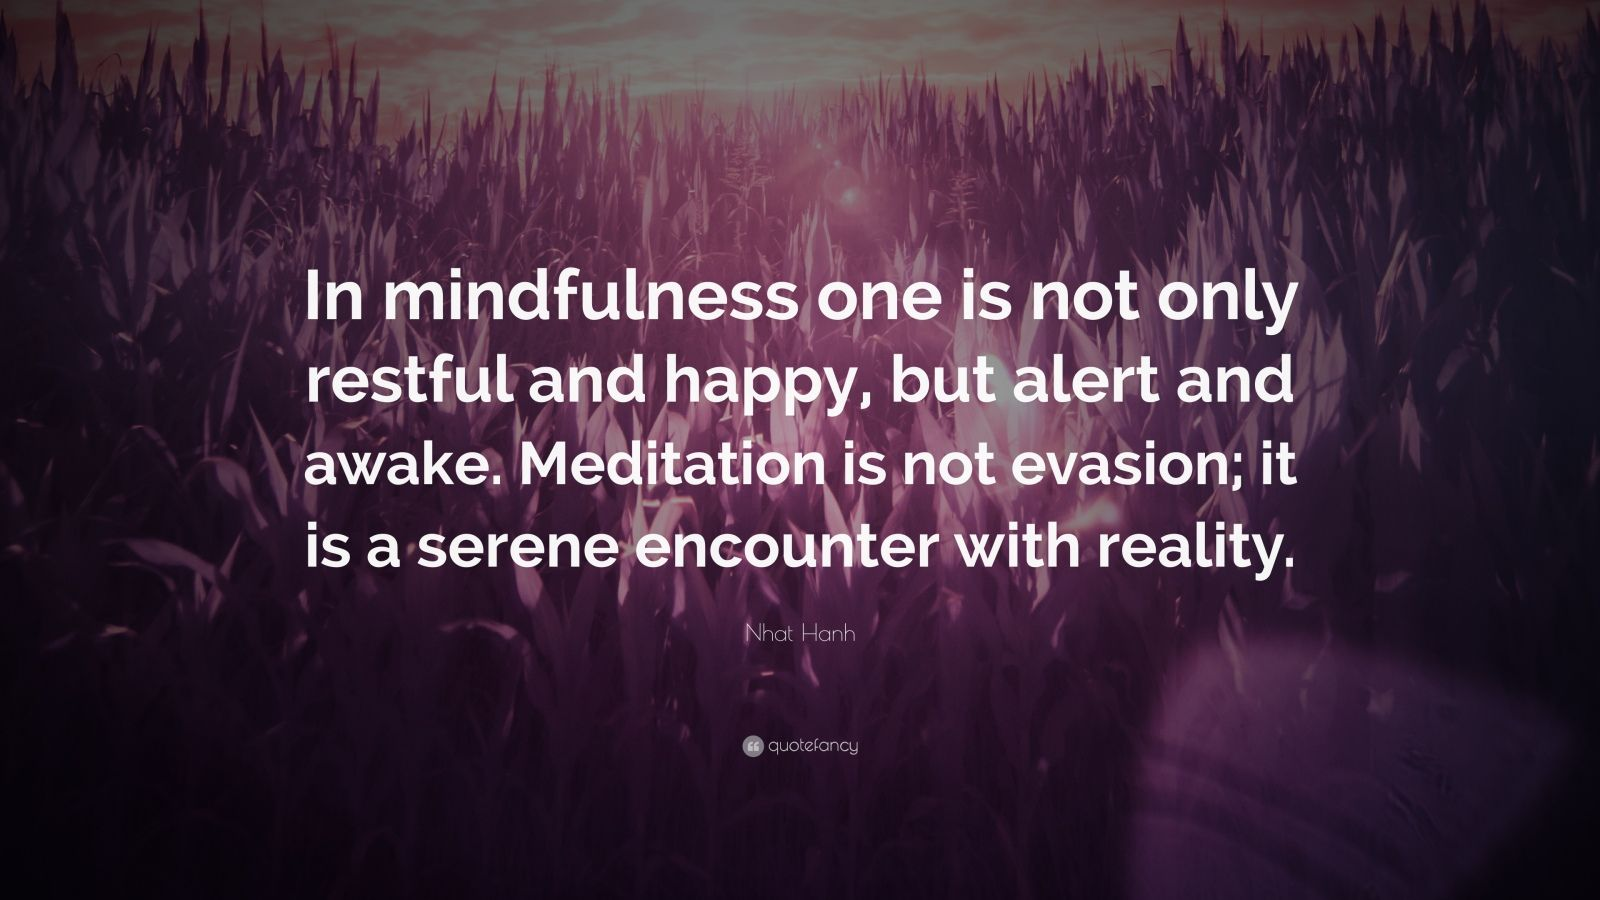 """Nhat Hanh Quote: """"In mindfulness one is not only restful and happy, but alert and awake. Meditation is not evasion; it is a serene encounter with reality."""""""